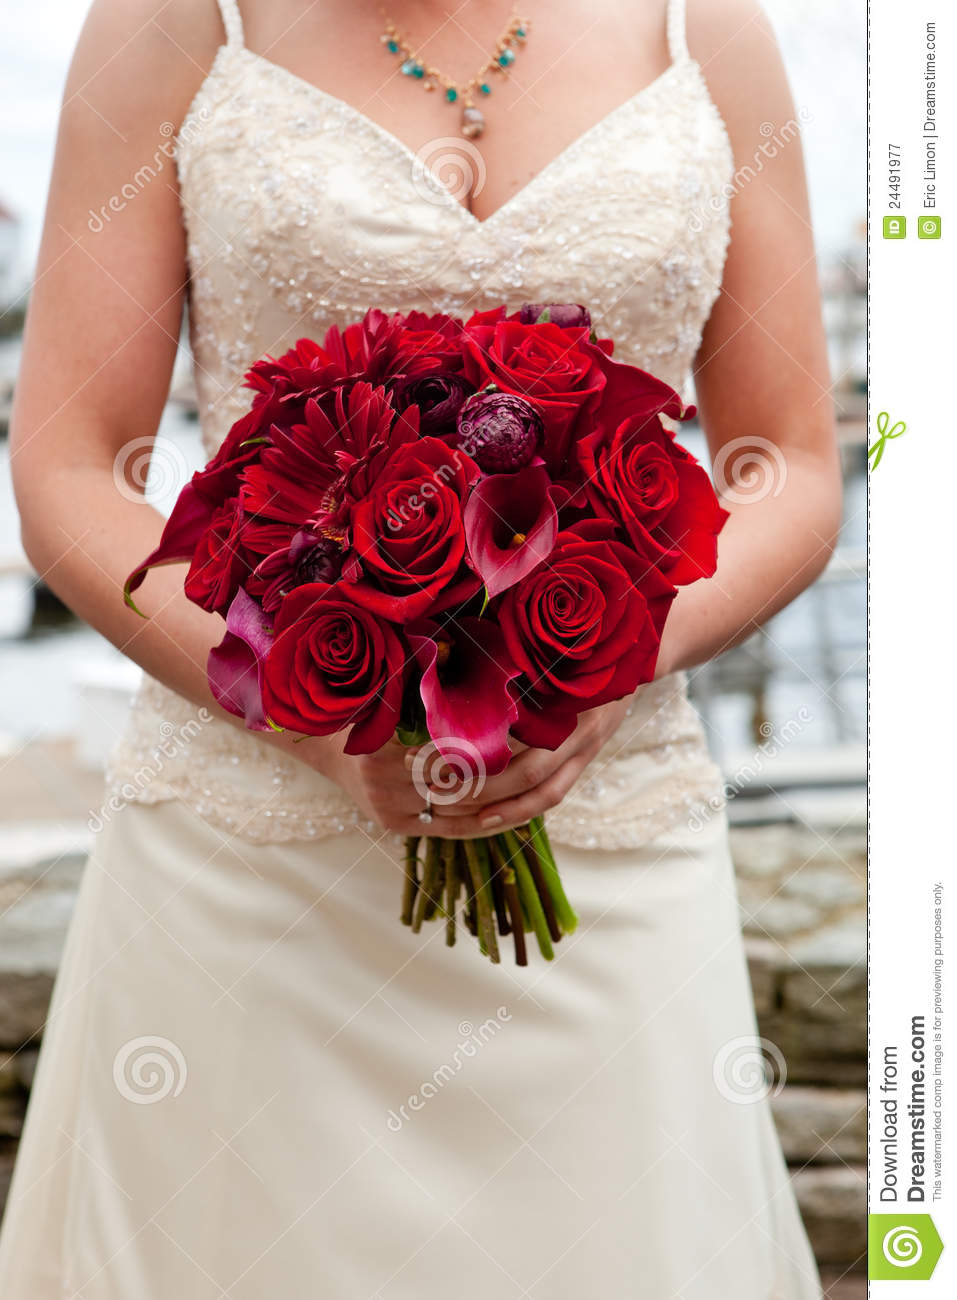 Bouquet rouge de mariage image stock image du blanc for Bouquet rose rouge